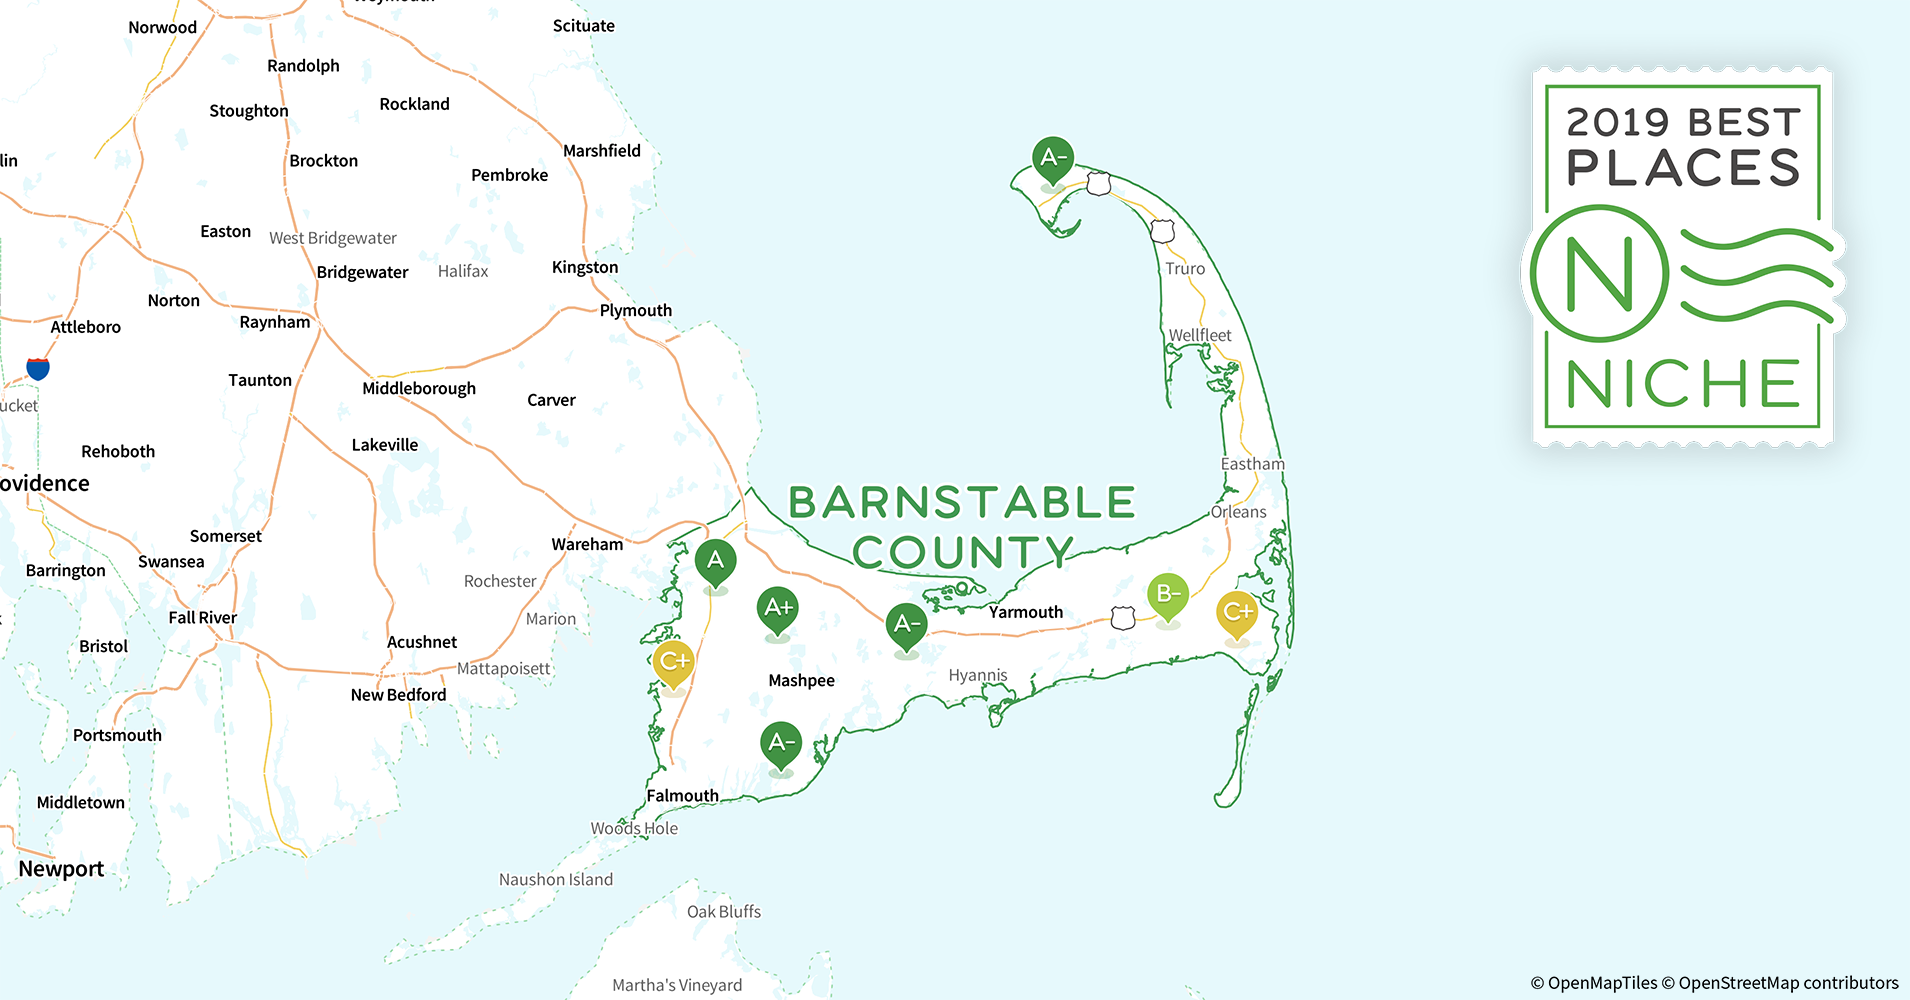 2019 Best Places to Buy a House in Barnstable County, MA - Niche